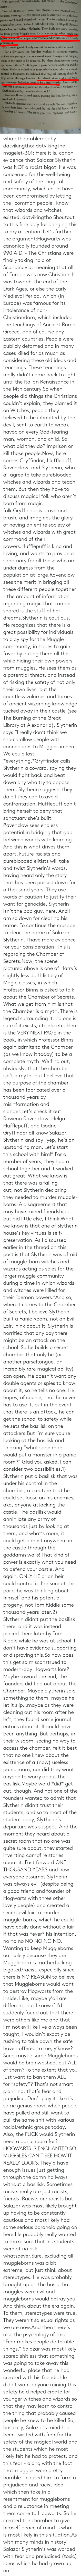 """Racist Bigot: the Chamber of  """"Oh, very well,"""" he said slowly. et me see..  Secrets...  """"You all know, of course, that Hogwarts was founded over  - the precise date is uncertain  by the four  chousand years ago  greatest witches and wizards of the age. The four school Houses ar  named after them: Godric Gryffindor, Helga Hufflepuff, Rowena  Ravenclaw, and Salazar Slytherin. They built this castle together,  far from prying Muggle eyes, for it was an age when magic was  fearea by common people, and witches and wizards suffered much  persecution.  He paused, gazed blearily around the room, and continued.  """"For a few years, the founders worked in harmony together,  seeking out youngsters who showed signs of magic and bringing  them to the castle to be educated. But then disagreements sprang  up between them. A rift began to grow between Slytherin and the  others. Slytherin wished to be more selective about the students ad-  mitted to Hogwarts. He believed that magical learning should be  kept within all-magic families. He disliked taking students of Mug-  ustworthy. After a while,  gle parentage, believing them to be untrustv  there was a serious argument on the subject between Slytherin and  Gryffindor, and Slytherin left the school.""""  Professor Binns paused again, pursing his lips, looking like a  wrinkled old tortoise.  """"Reliable historical sources tell us this much."""" he said. """"But these  honest facts have been obscured by the fanciful legend of the  Chamber of Secrets. The story goes that Slytherin had bun whatstheproblembaby:  datvikingtho:   datvikingtho:   magelet-301:   Here it is, canon evidence that Salazar Slytherin was NOT a racist bigot. He was concerned for the well-being and safety of the magical community, which could have been compromised by letting the """"common people"""" know that wizards and witches existed.  datvikingtho   Shoutout to this fine lady for bringing this to my attention. Let's further the argument:Hogwarts was canonically founded around 99"""